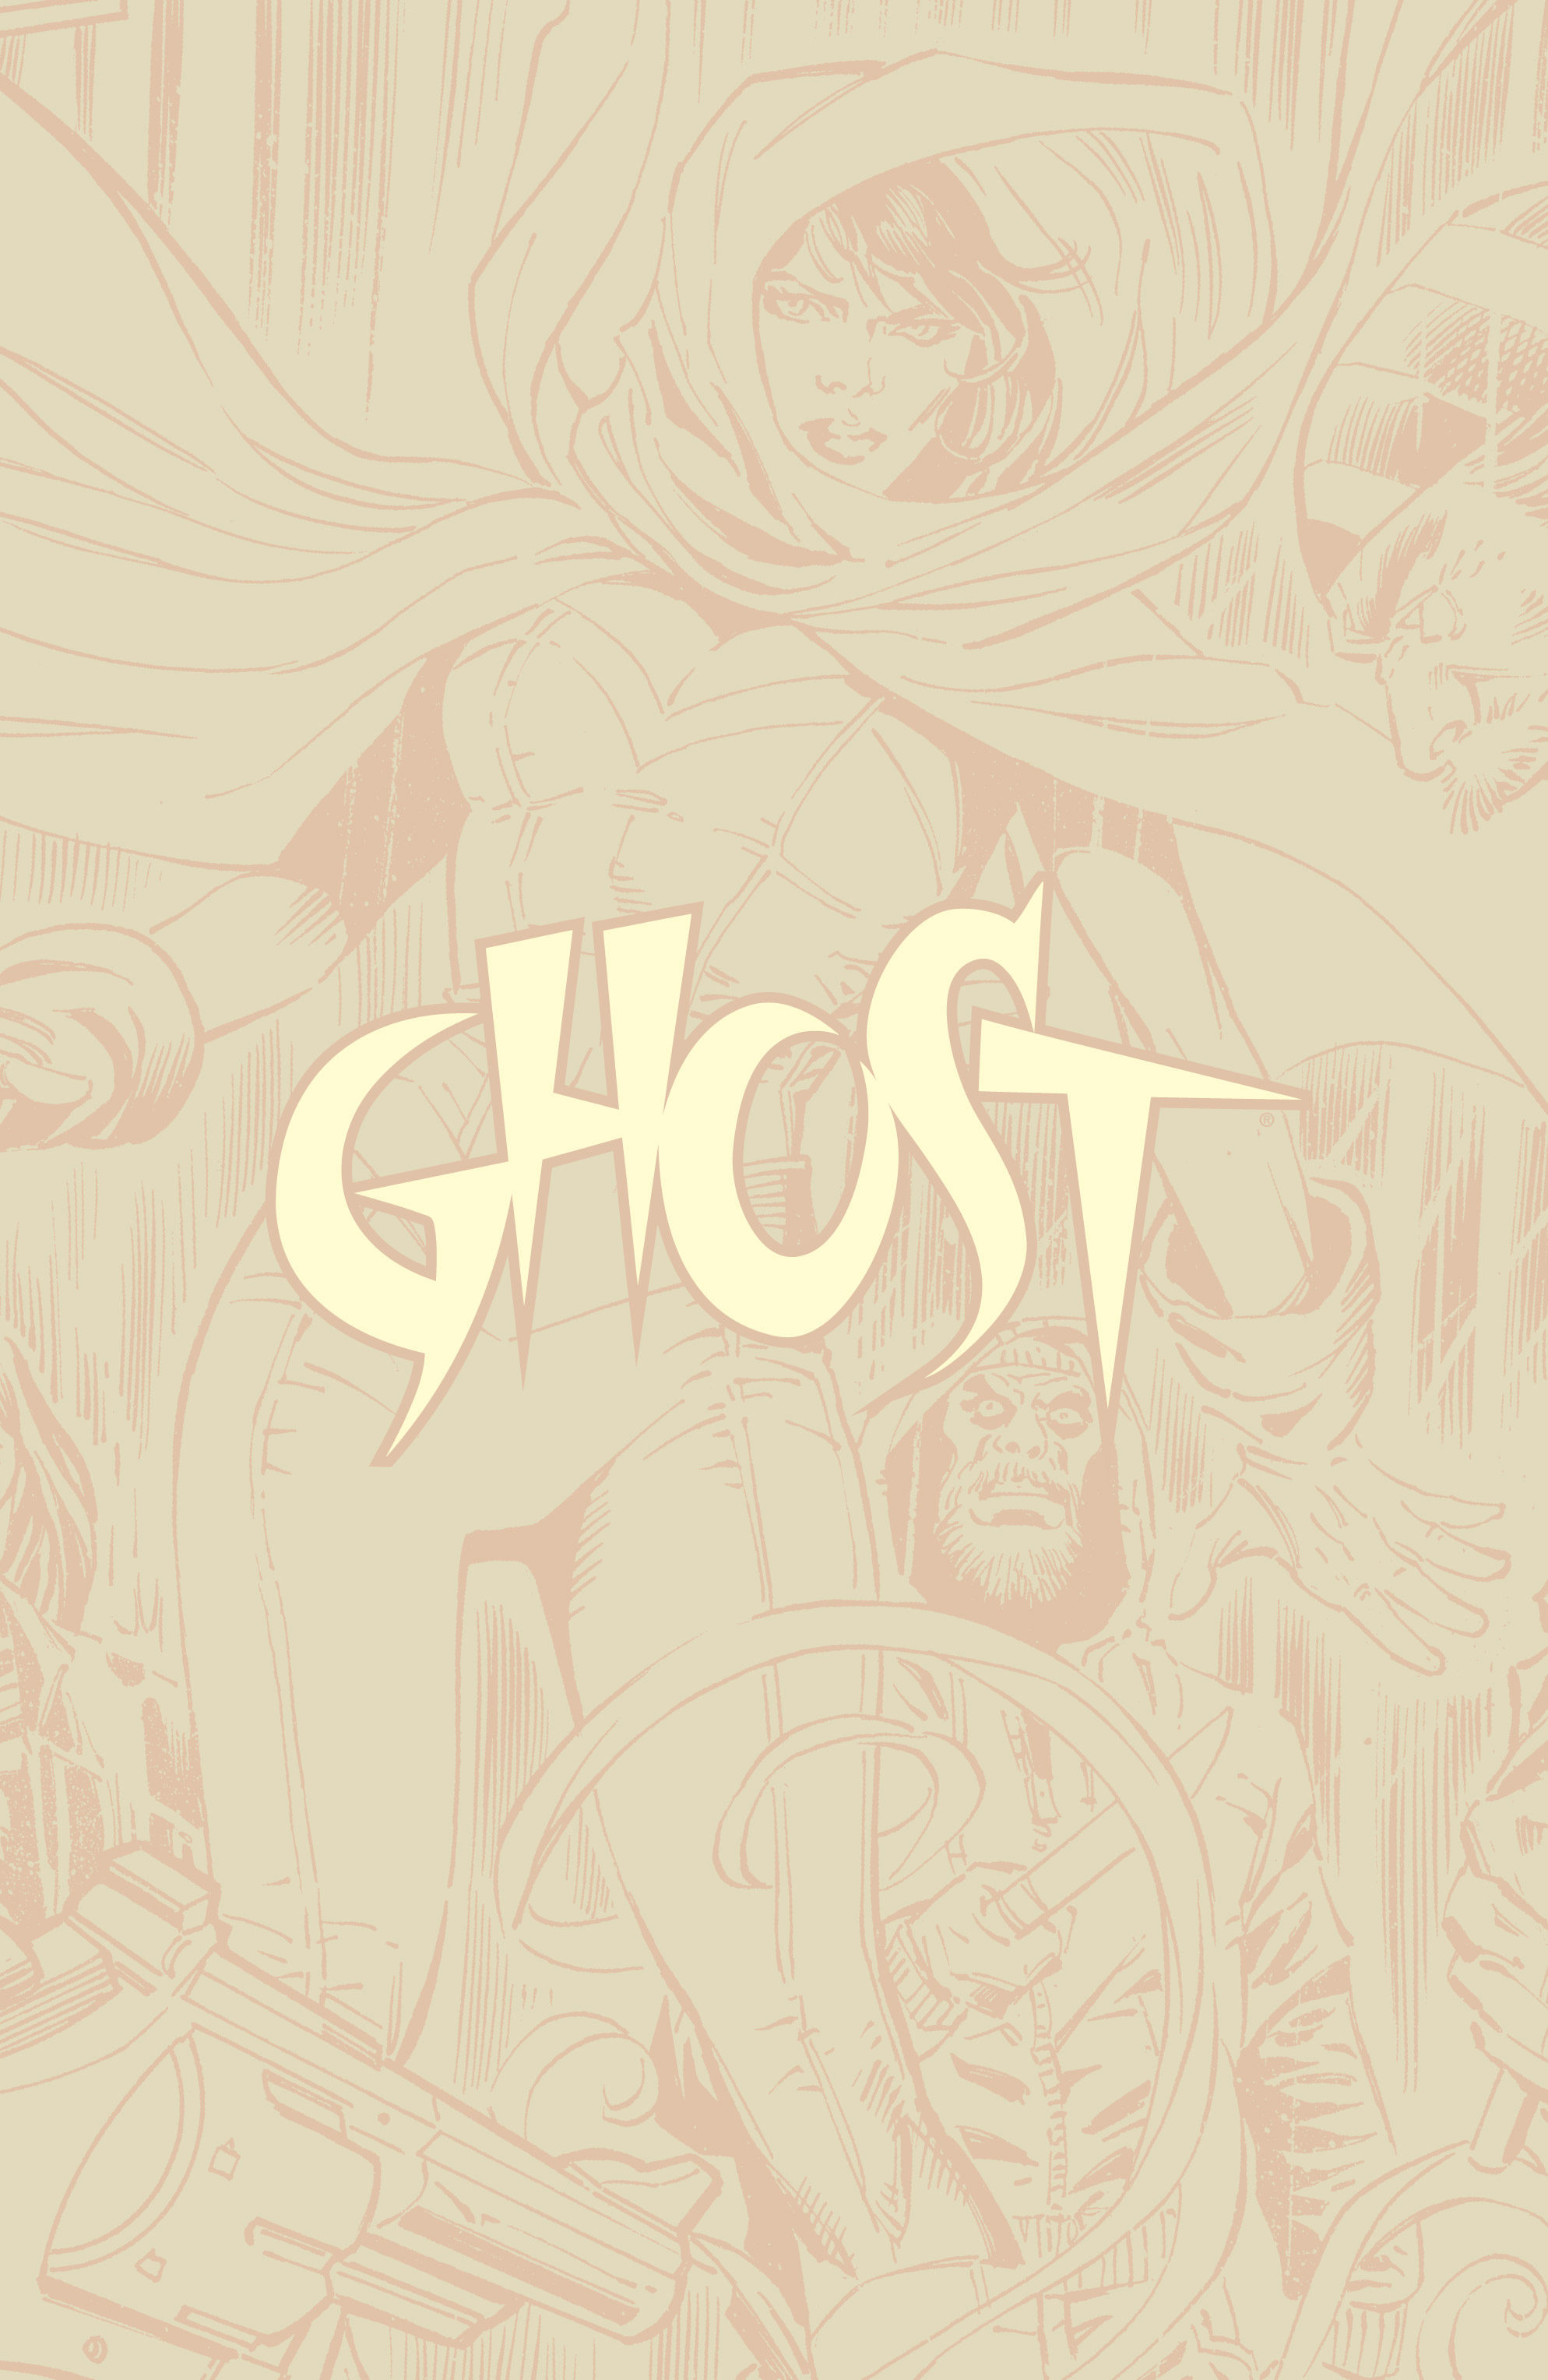 Read online Ghost (2013) comic -  Issue # TPB 2 - 3